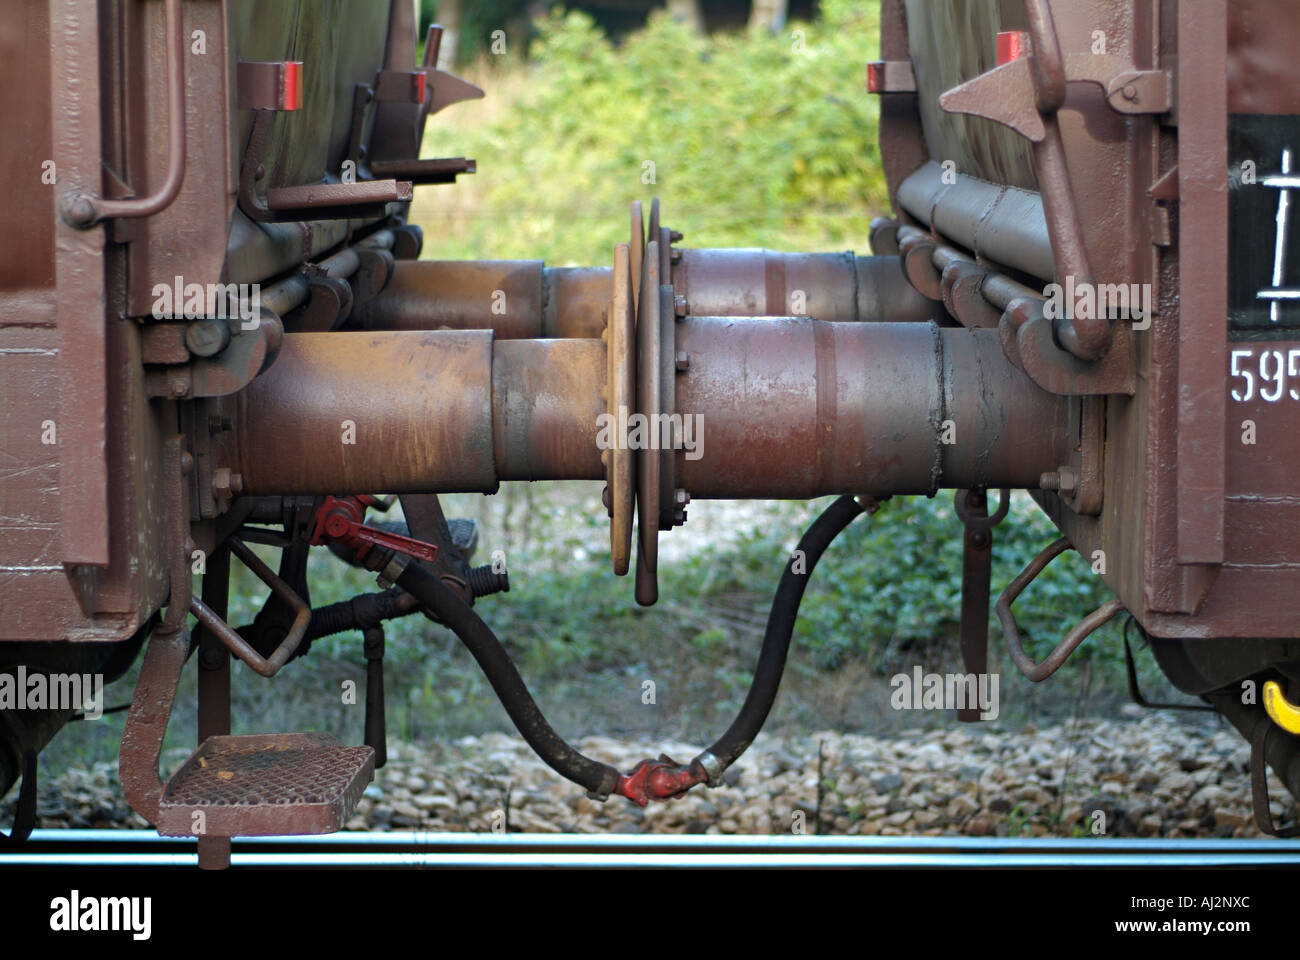 Close Up View of the Buffers of Two Connected Railway Freight Waggons - Stock Image